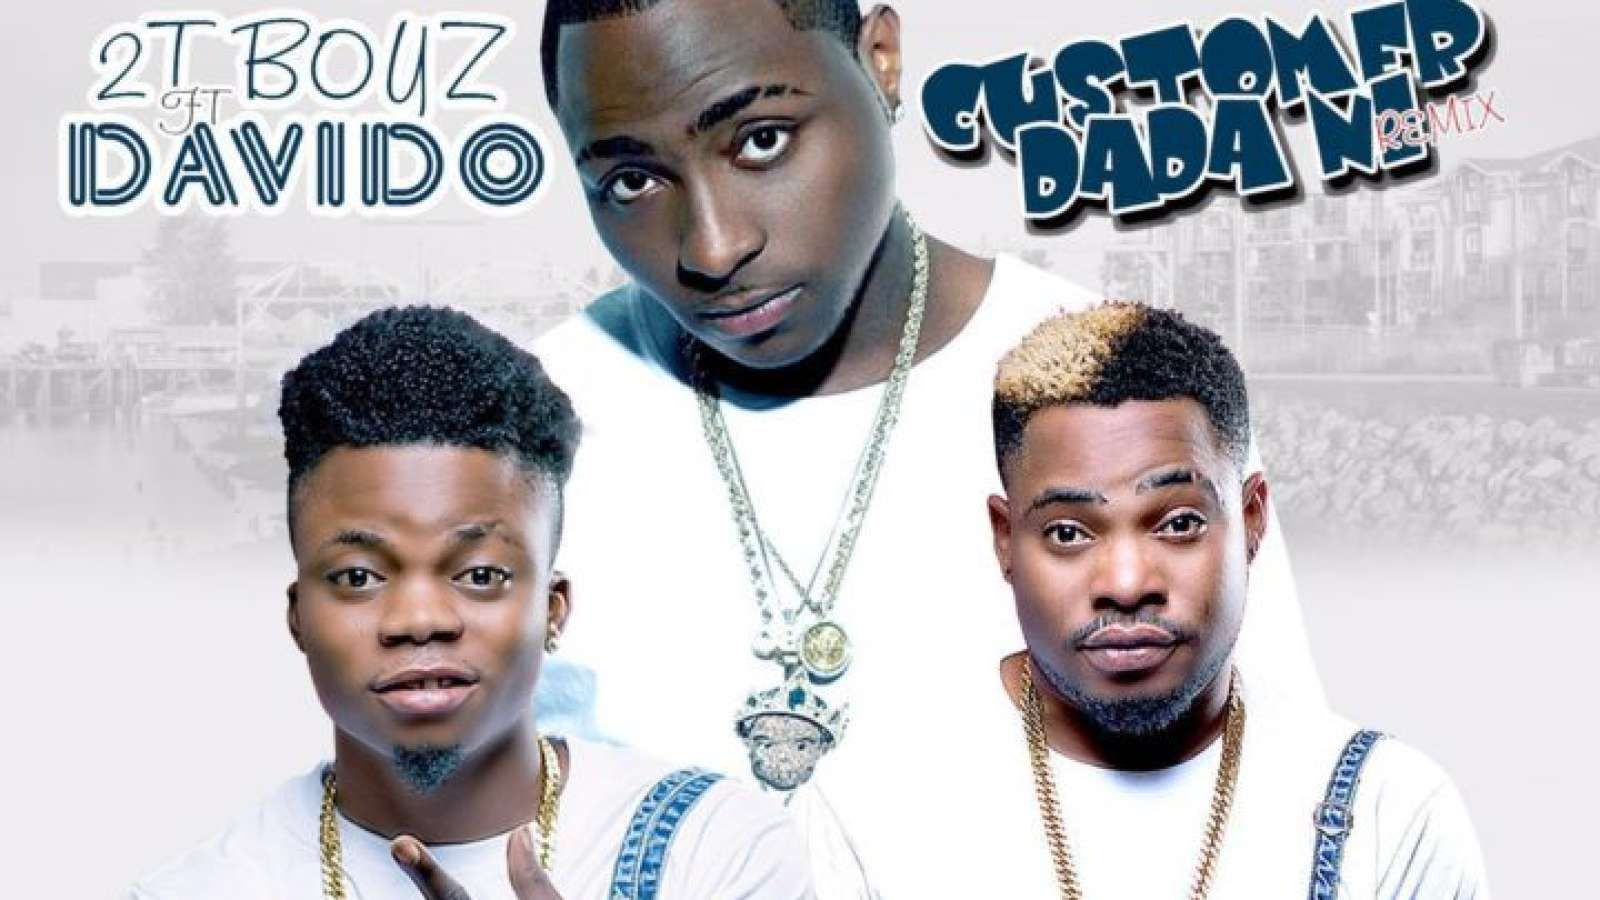 The remix, featuring Davido, has all the attributes of a